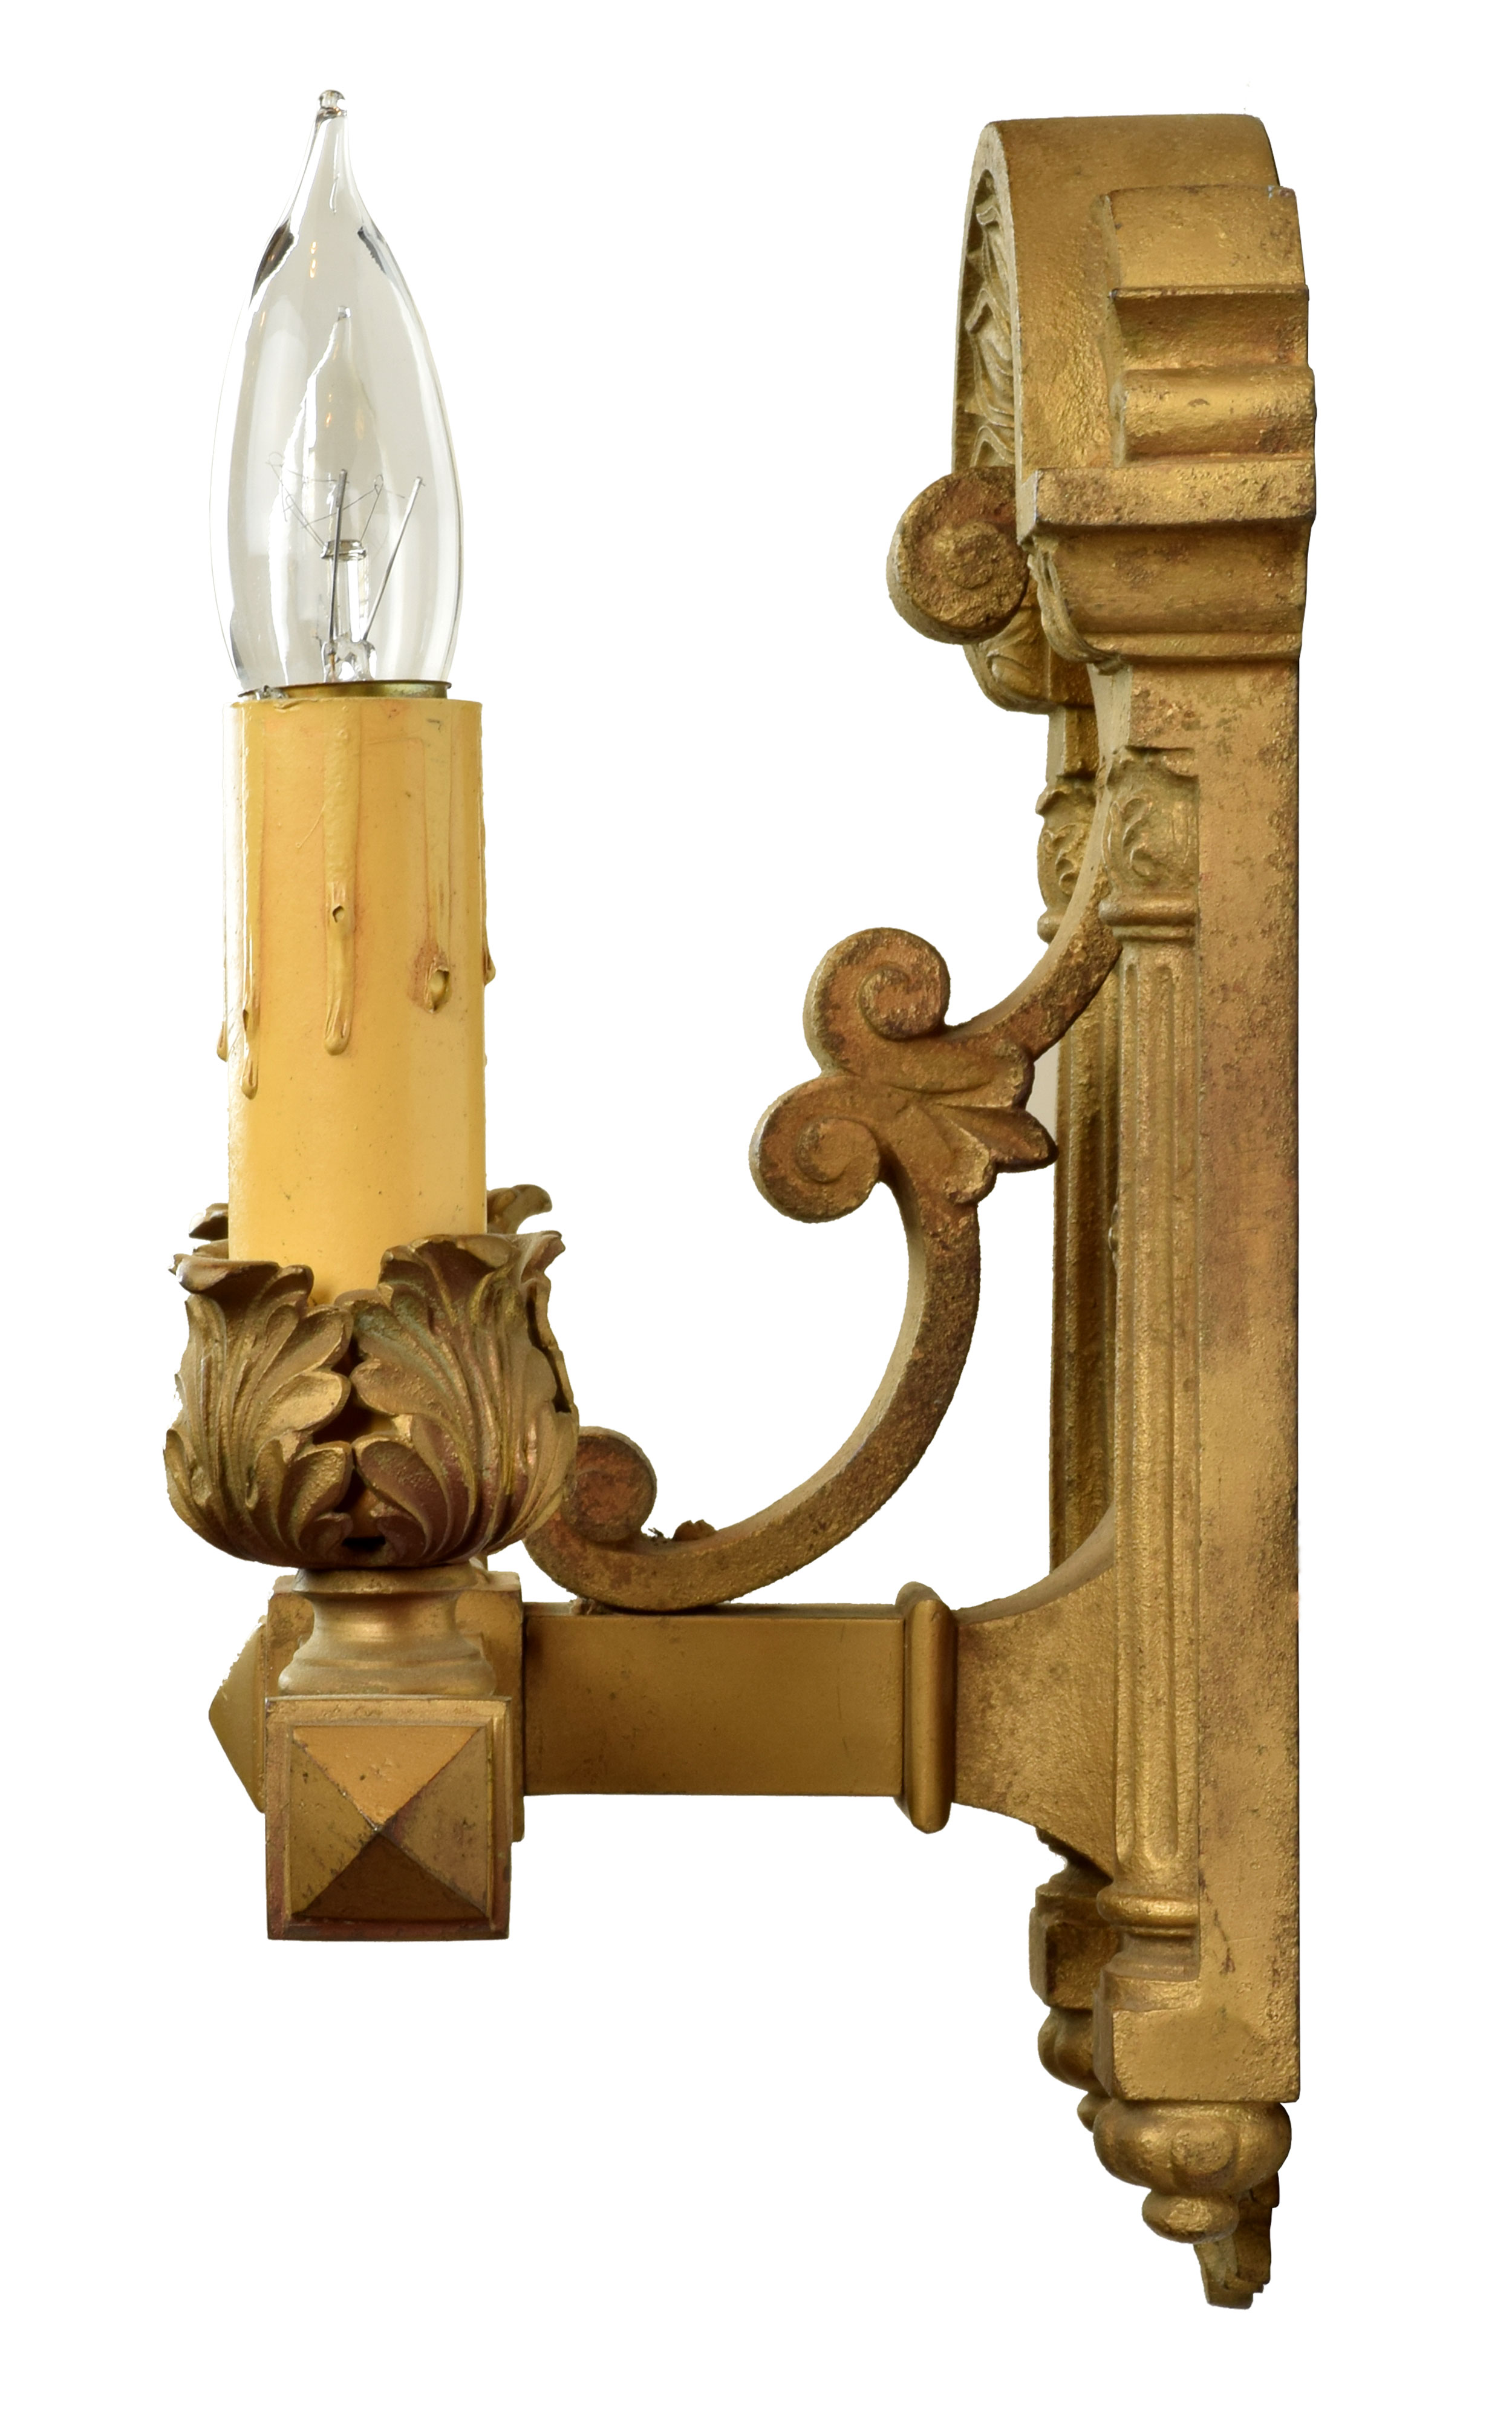 39679-heavy-cast-sconce-profile.jpg